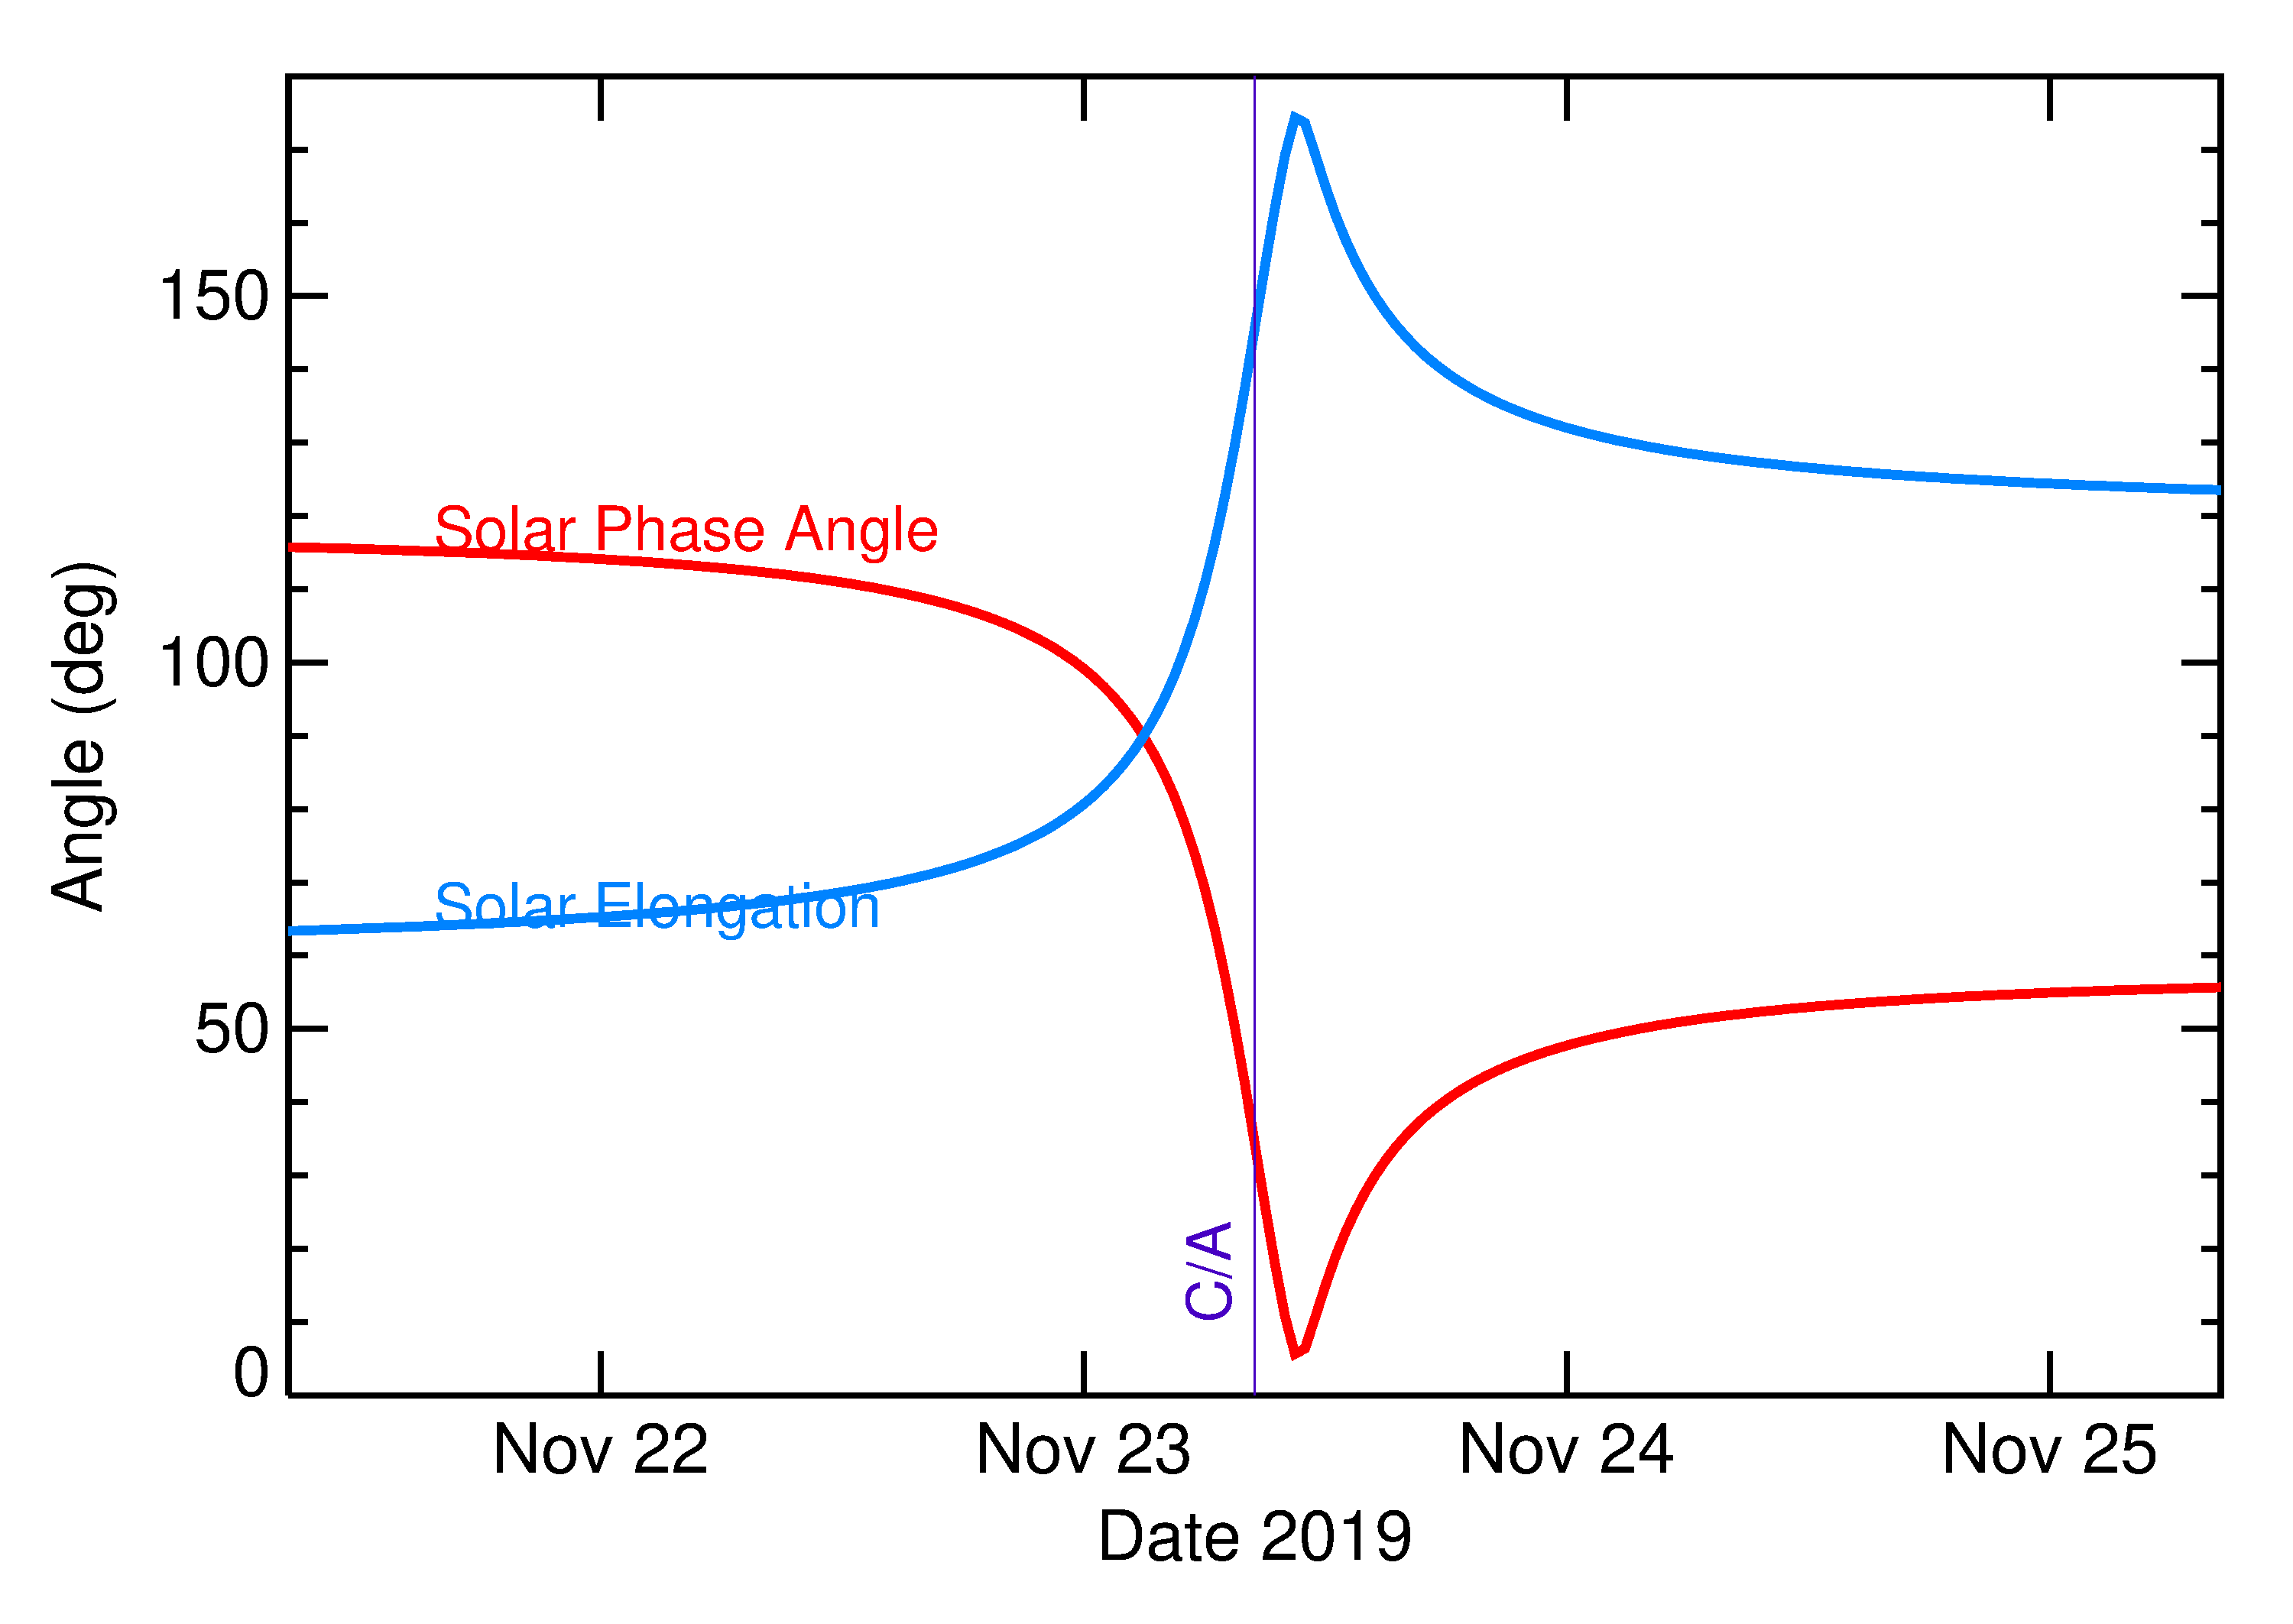 Solar Elongation and Solar Phase Angle of 2019 WG2 in the days around closest approach